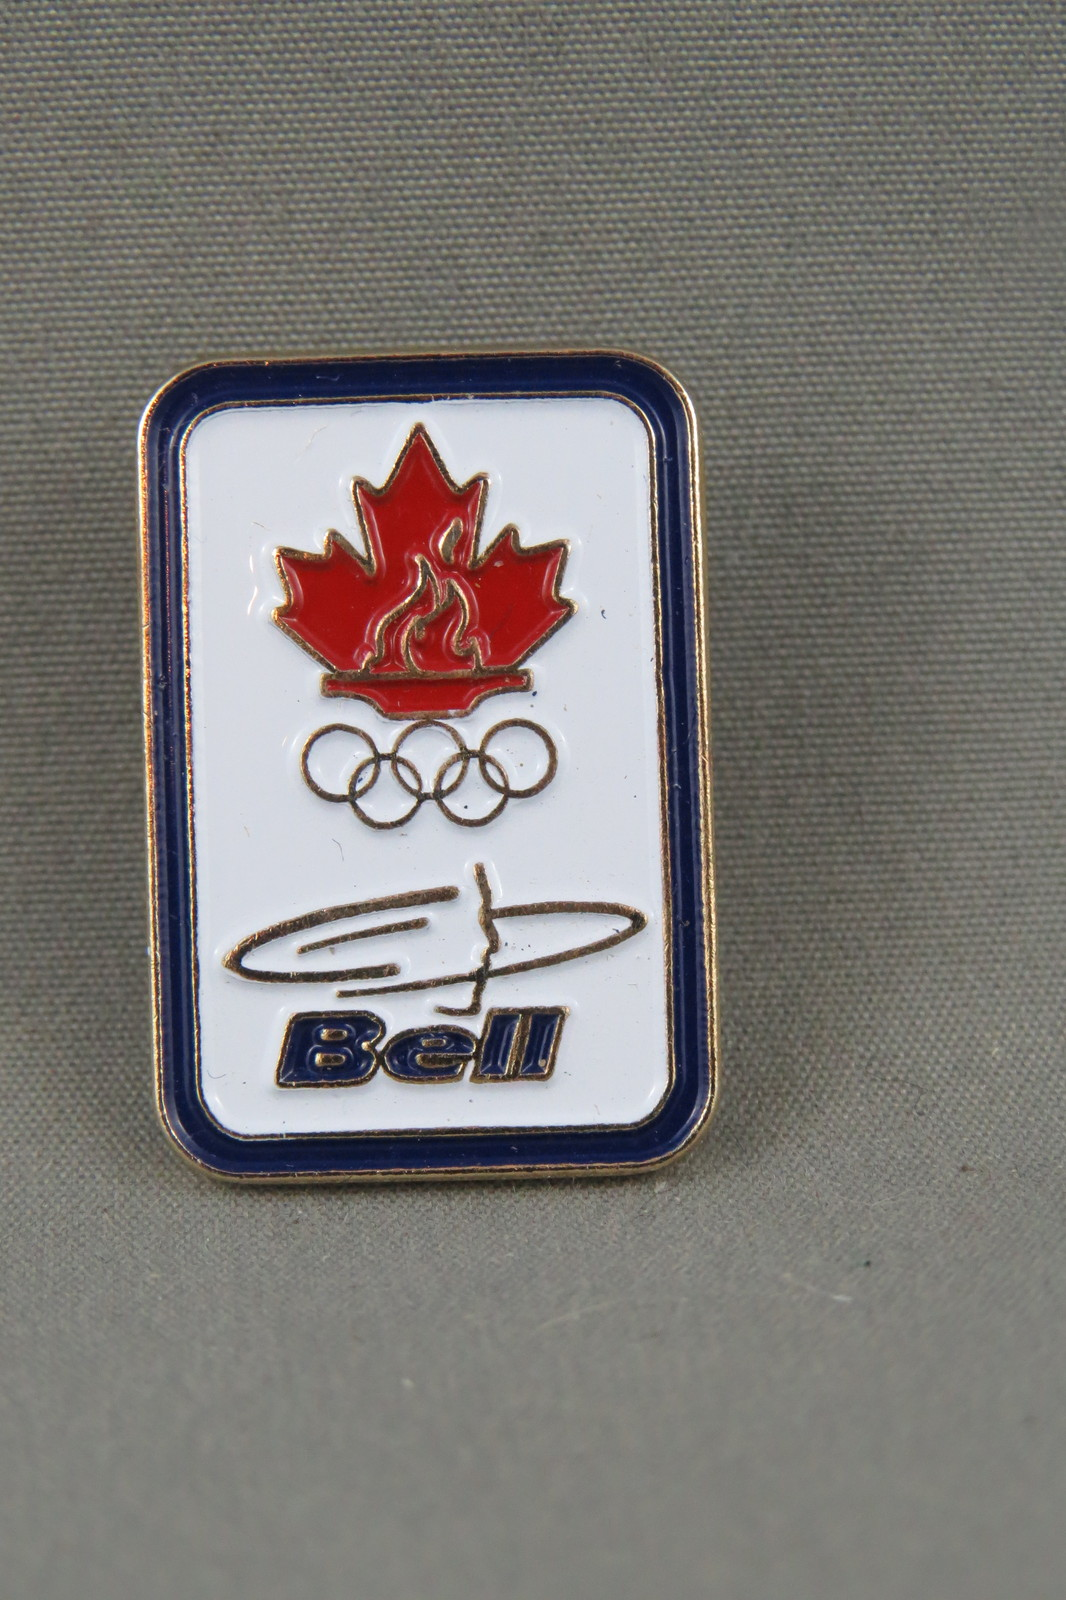 Primary image for 2010 Winter Olympic Games - Bell Media Sponsor Pin - Vancouver BC Canada